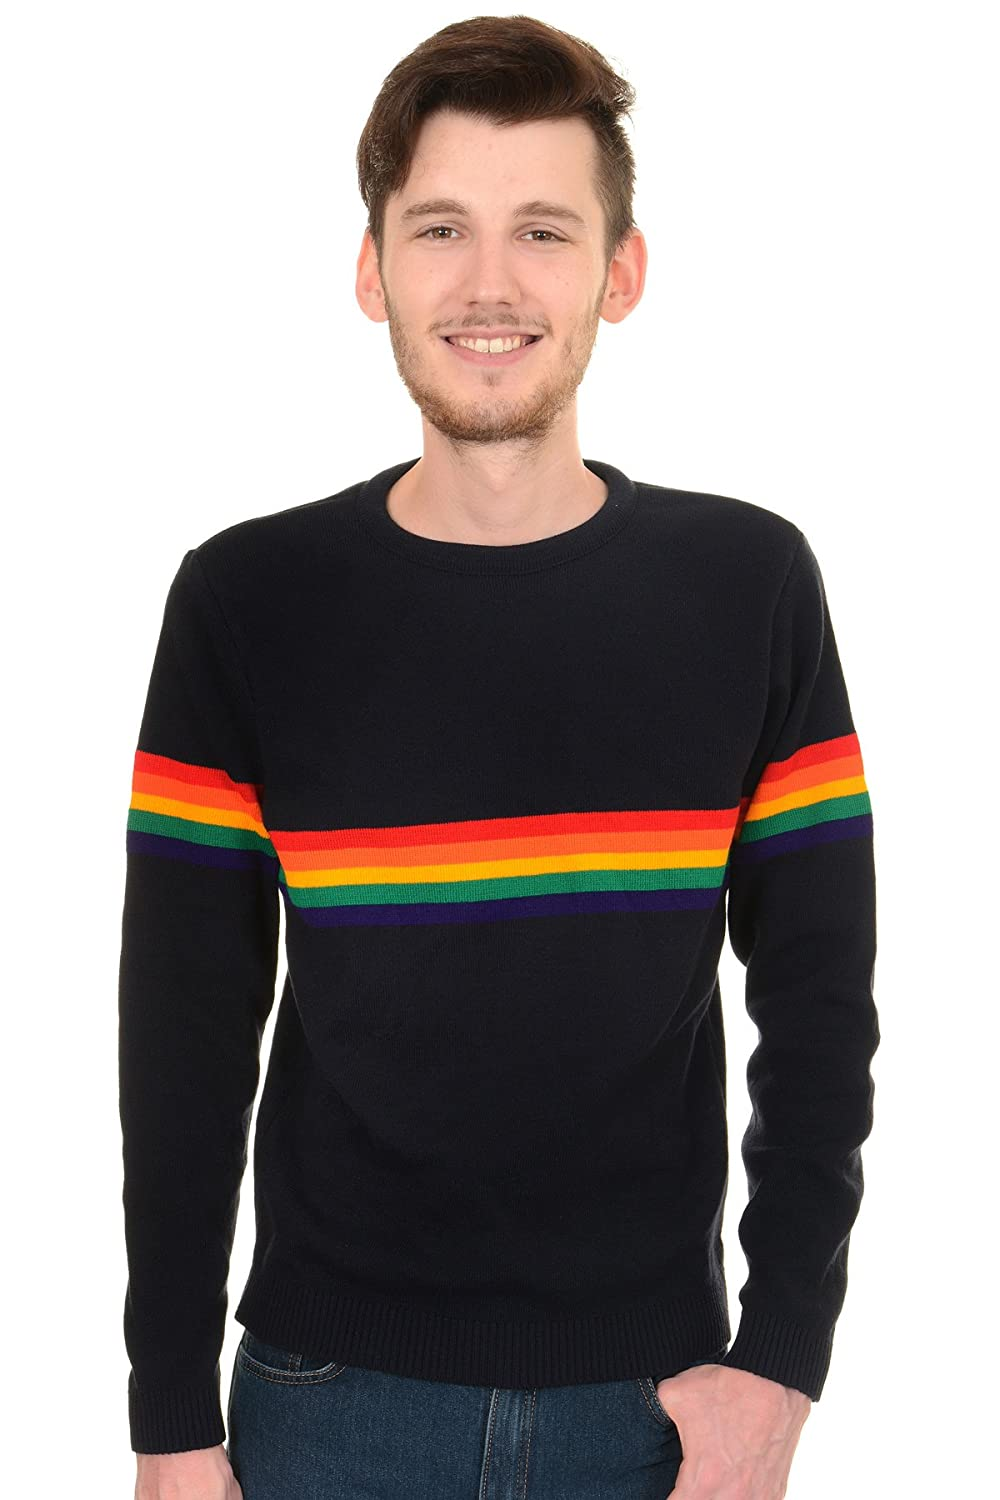 Men's Vintage Style Sweaters – 1920s to 1960s  60s 70s Vintage Retro Rainbow Indie Jumper $39.95 AT vintagedancer.com